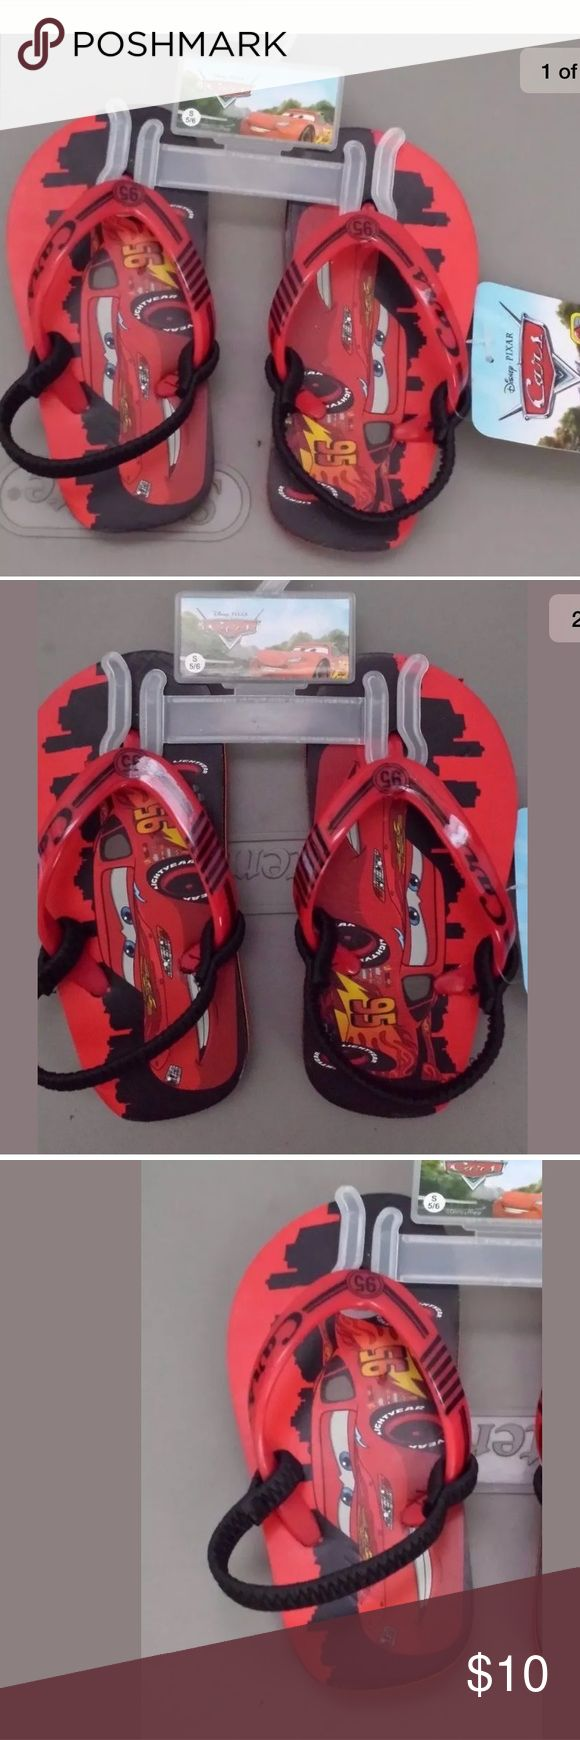 Cars  Flip Flops Sandals Toddler Boys S 5/6 Disney Cars  Flip Flops Sandals Toddler Boys S 5/6  Disney Red  BOYS FLIP FLOP SANDALS WITH ELASTIC STRAP   NON-SKID SOLES SIZE SMALL  (5-6) ALL MAN-MADE MATERIALS BRAND NEW WITH TAGS  Smoke and pets free home Disney Shoes Sandals & Flip Flops